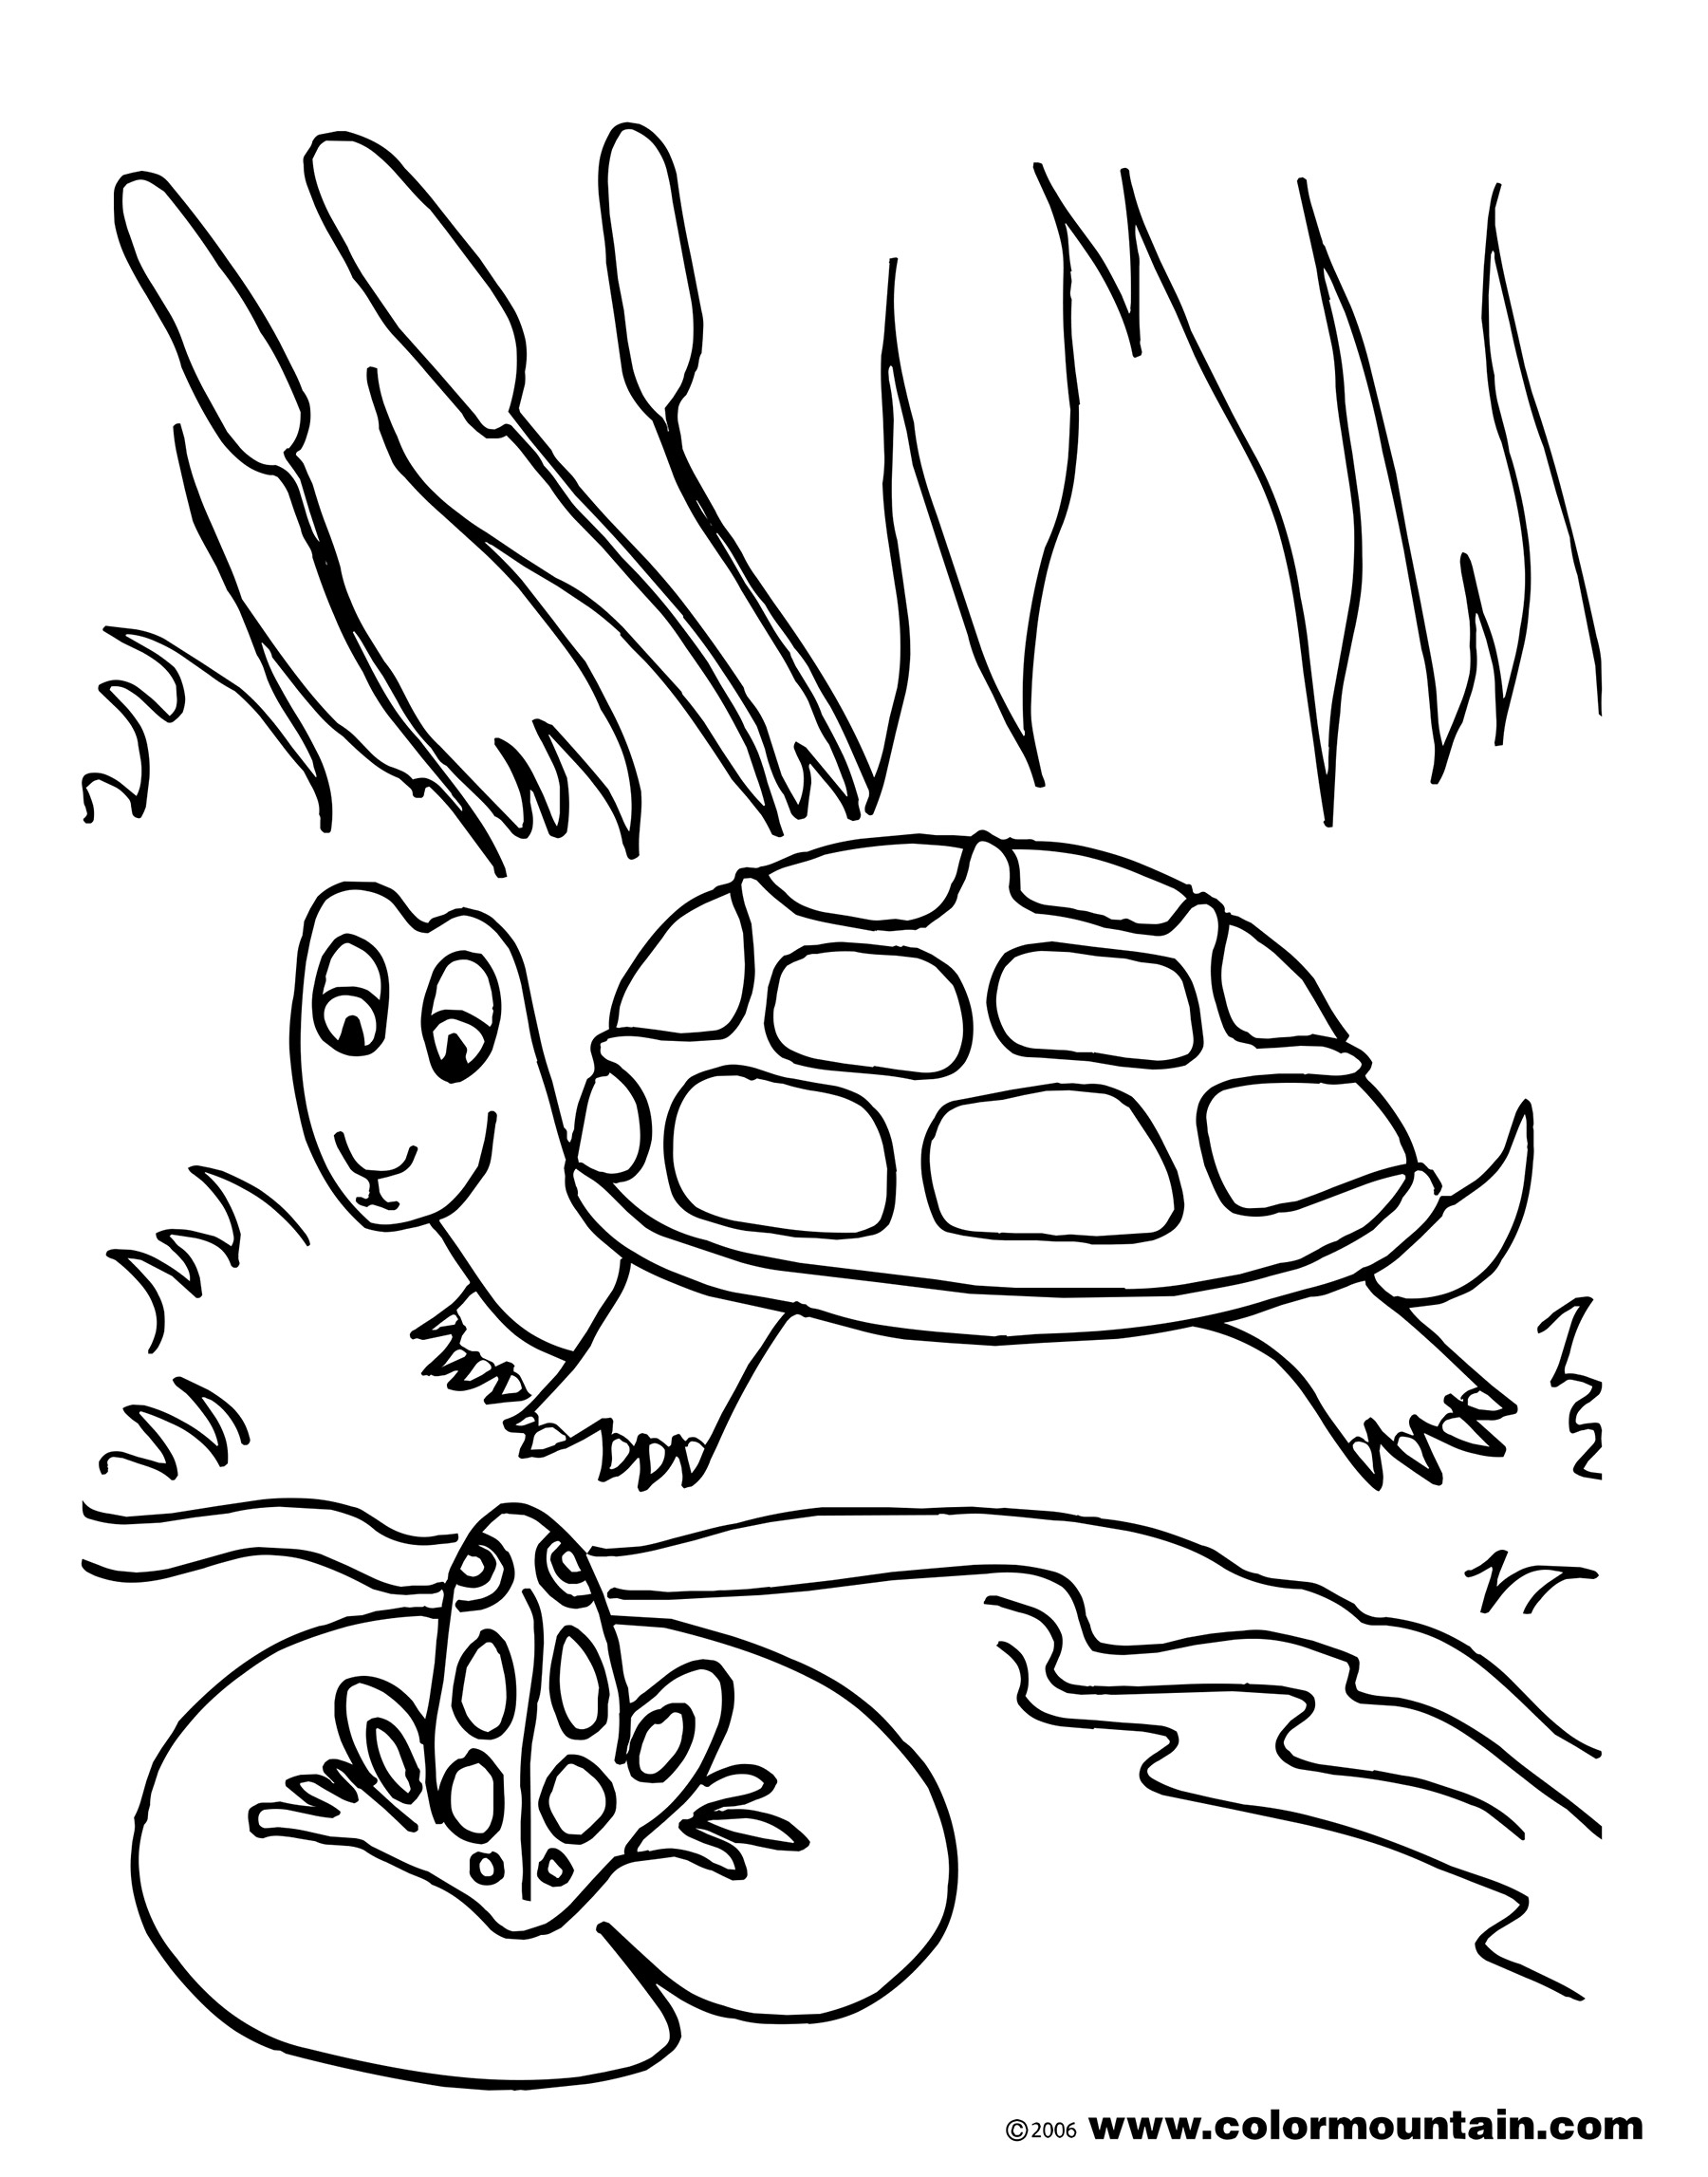 pond coloring pages pond coloring download pond coloring for free 2019 coloring pond pages